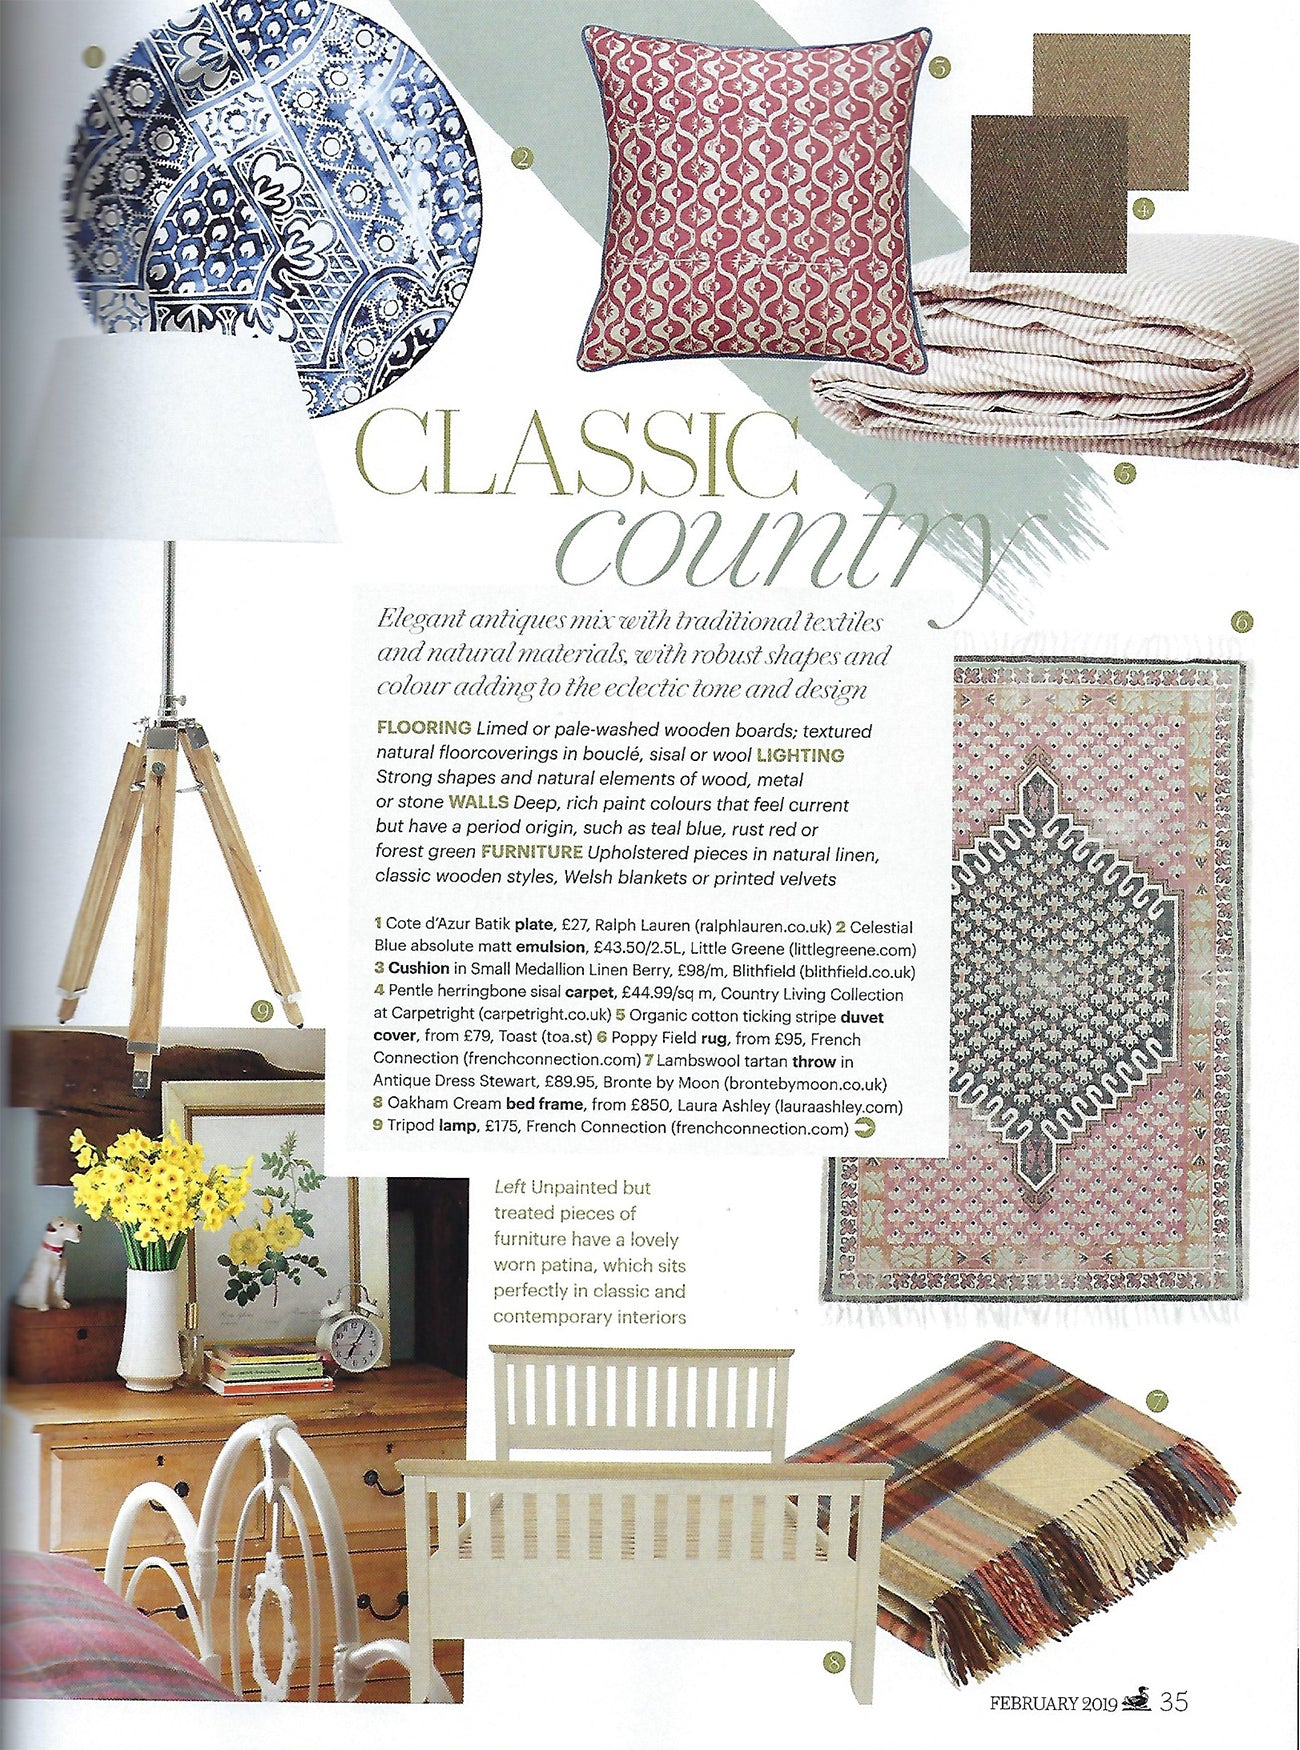 Wicklewood Small Medallion cushion in red berry featured the Classic Country article in Country Living February 2019 Issue